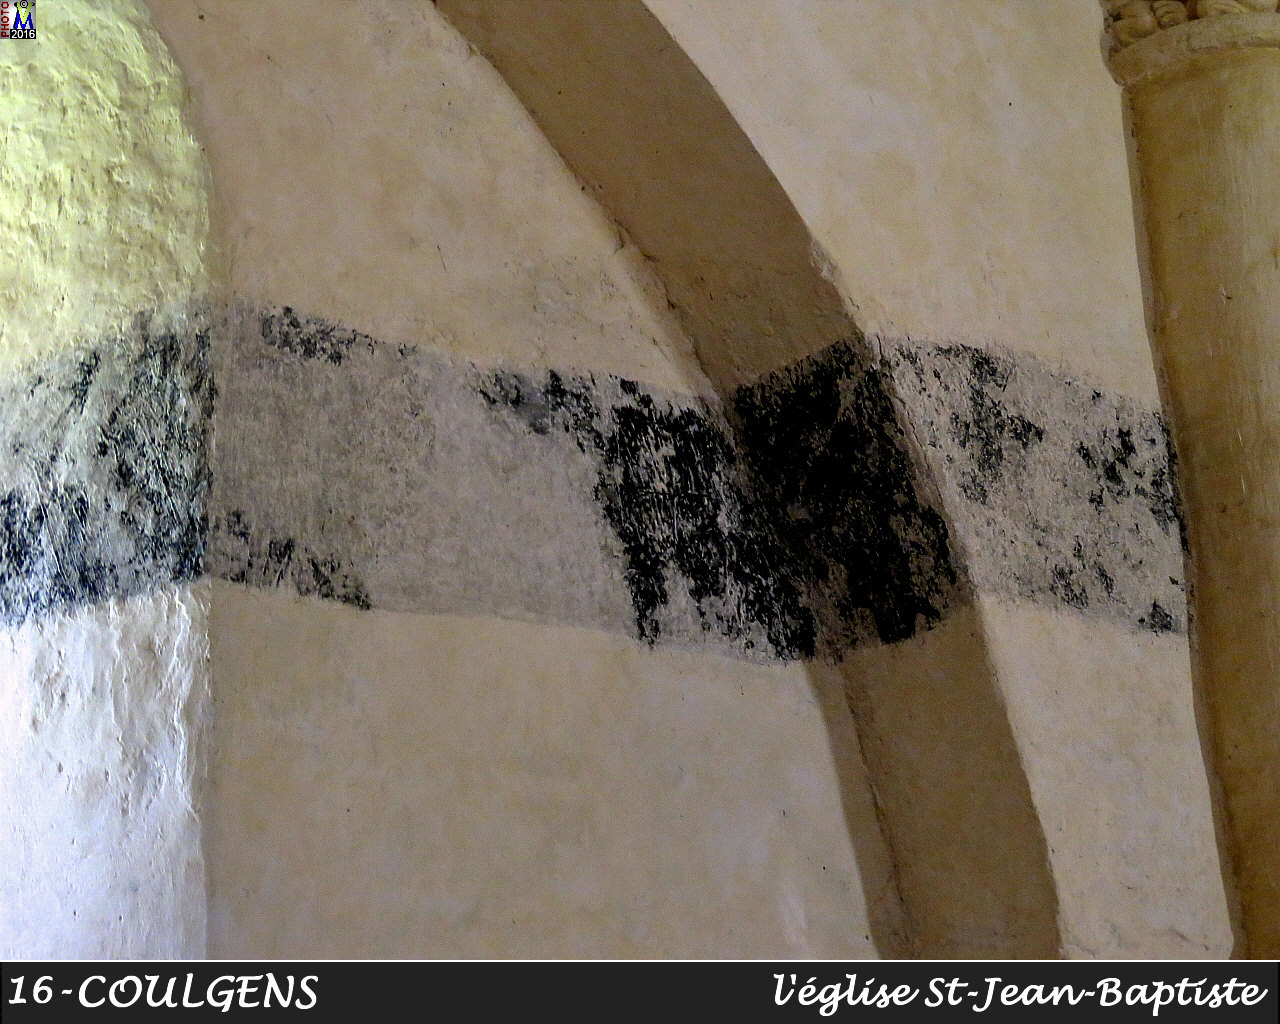 16COULGENS_eglise_1125.jpg